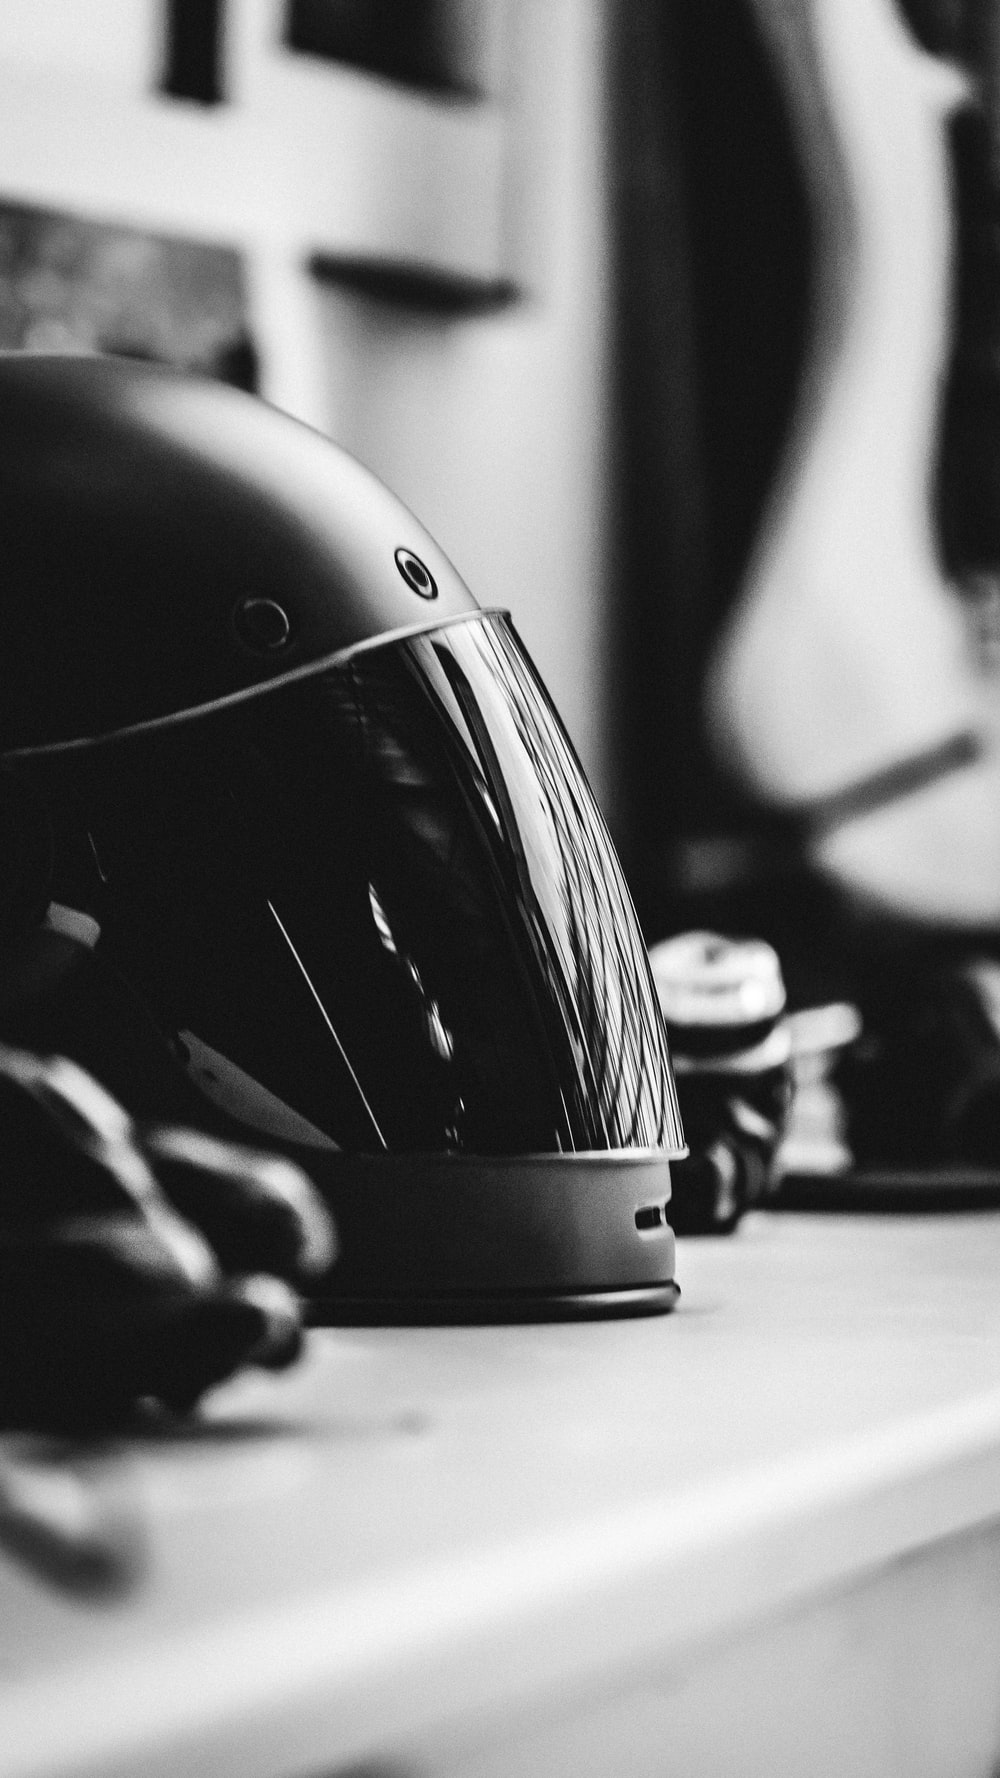 grayscale selective focus photography of full-face helmet on desk